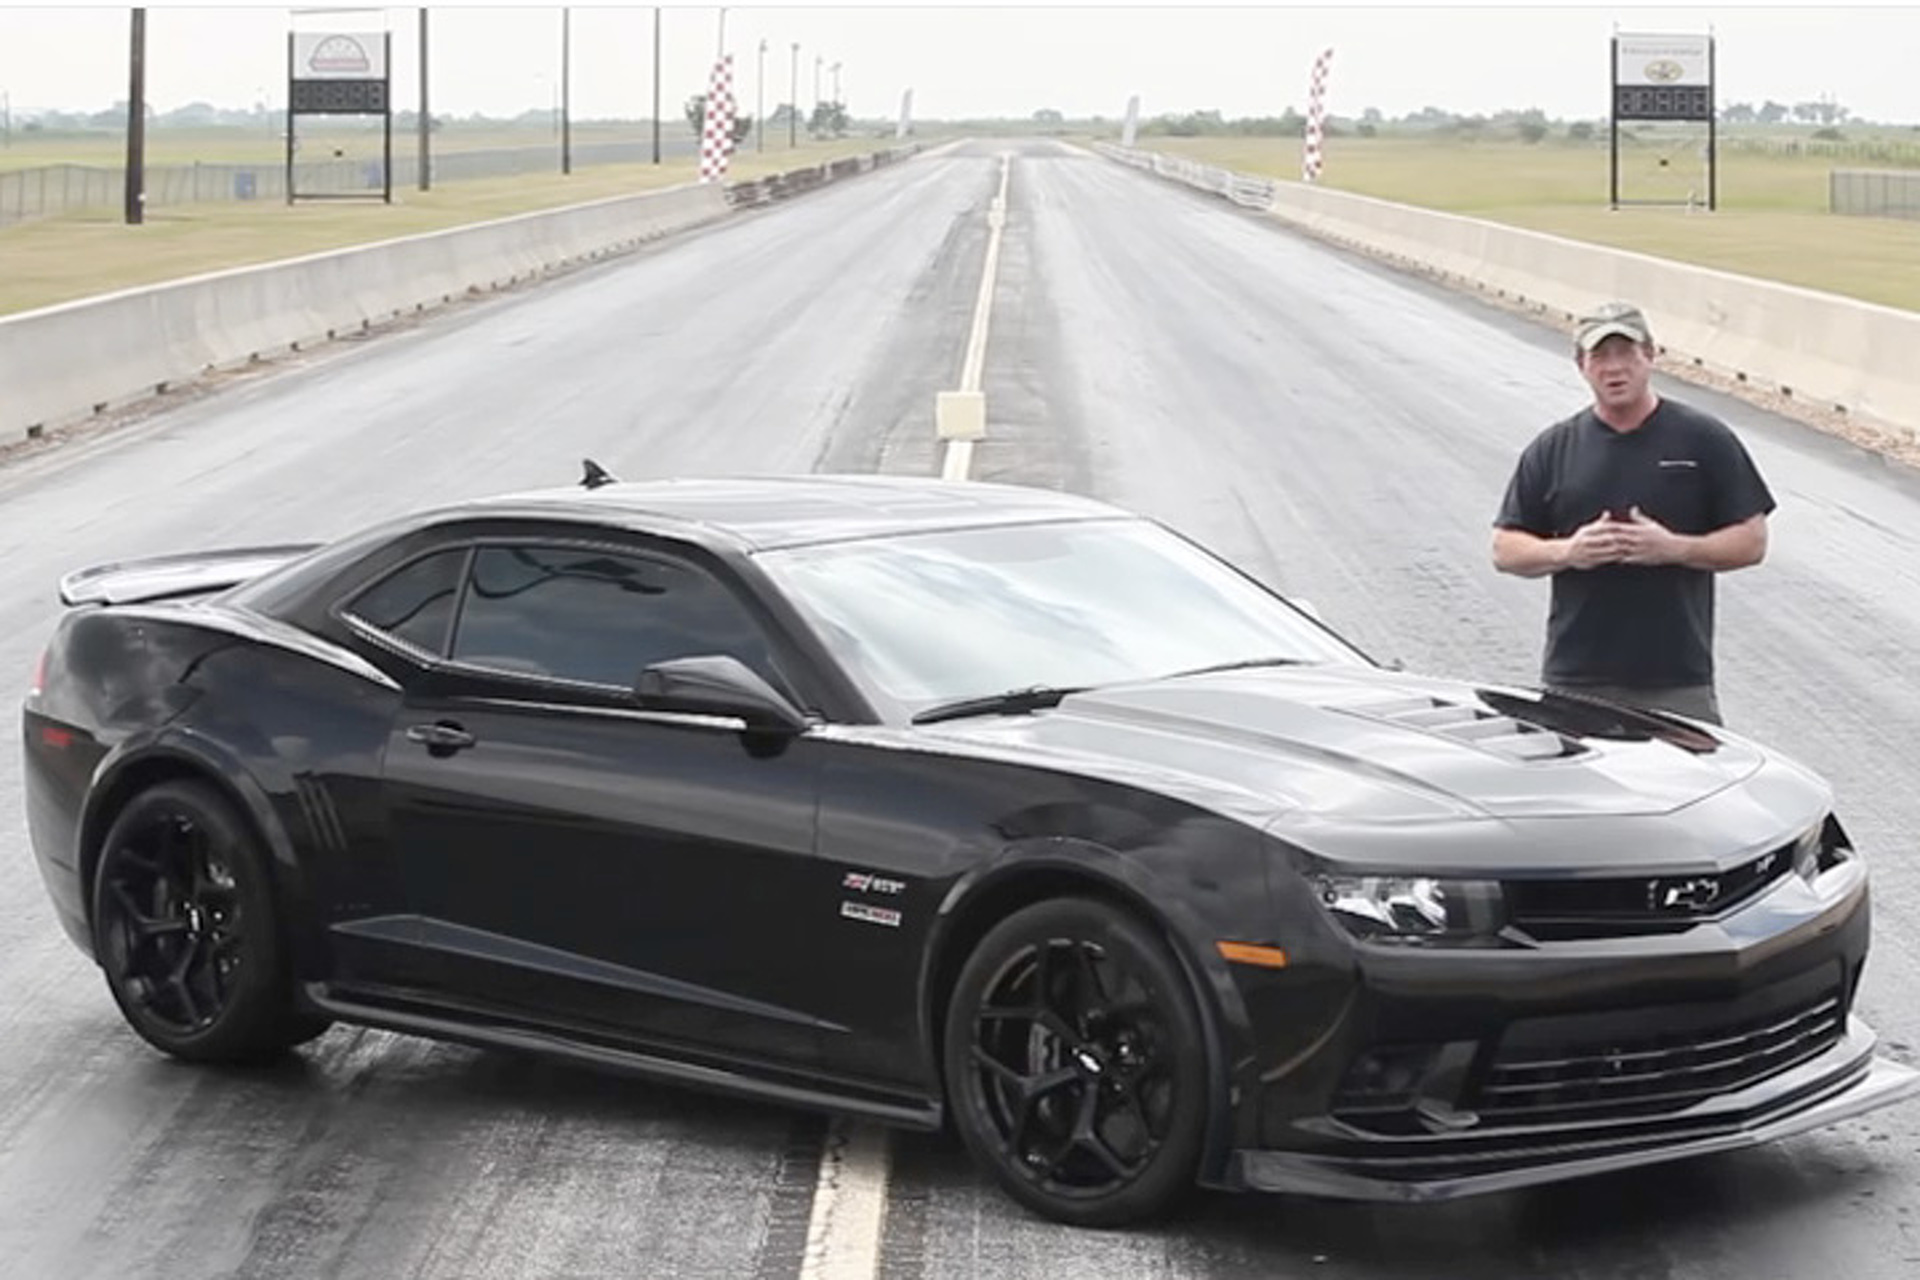 Join John Hennessey for a Ride in a 636HP Camaro Z/28 [Video]